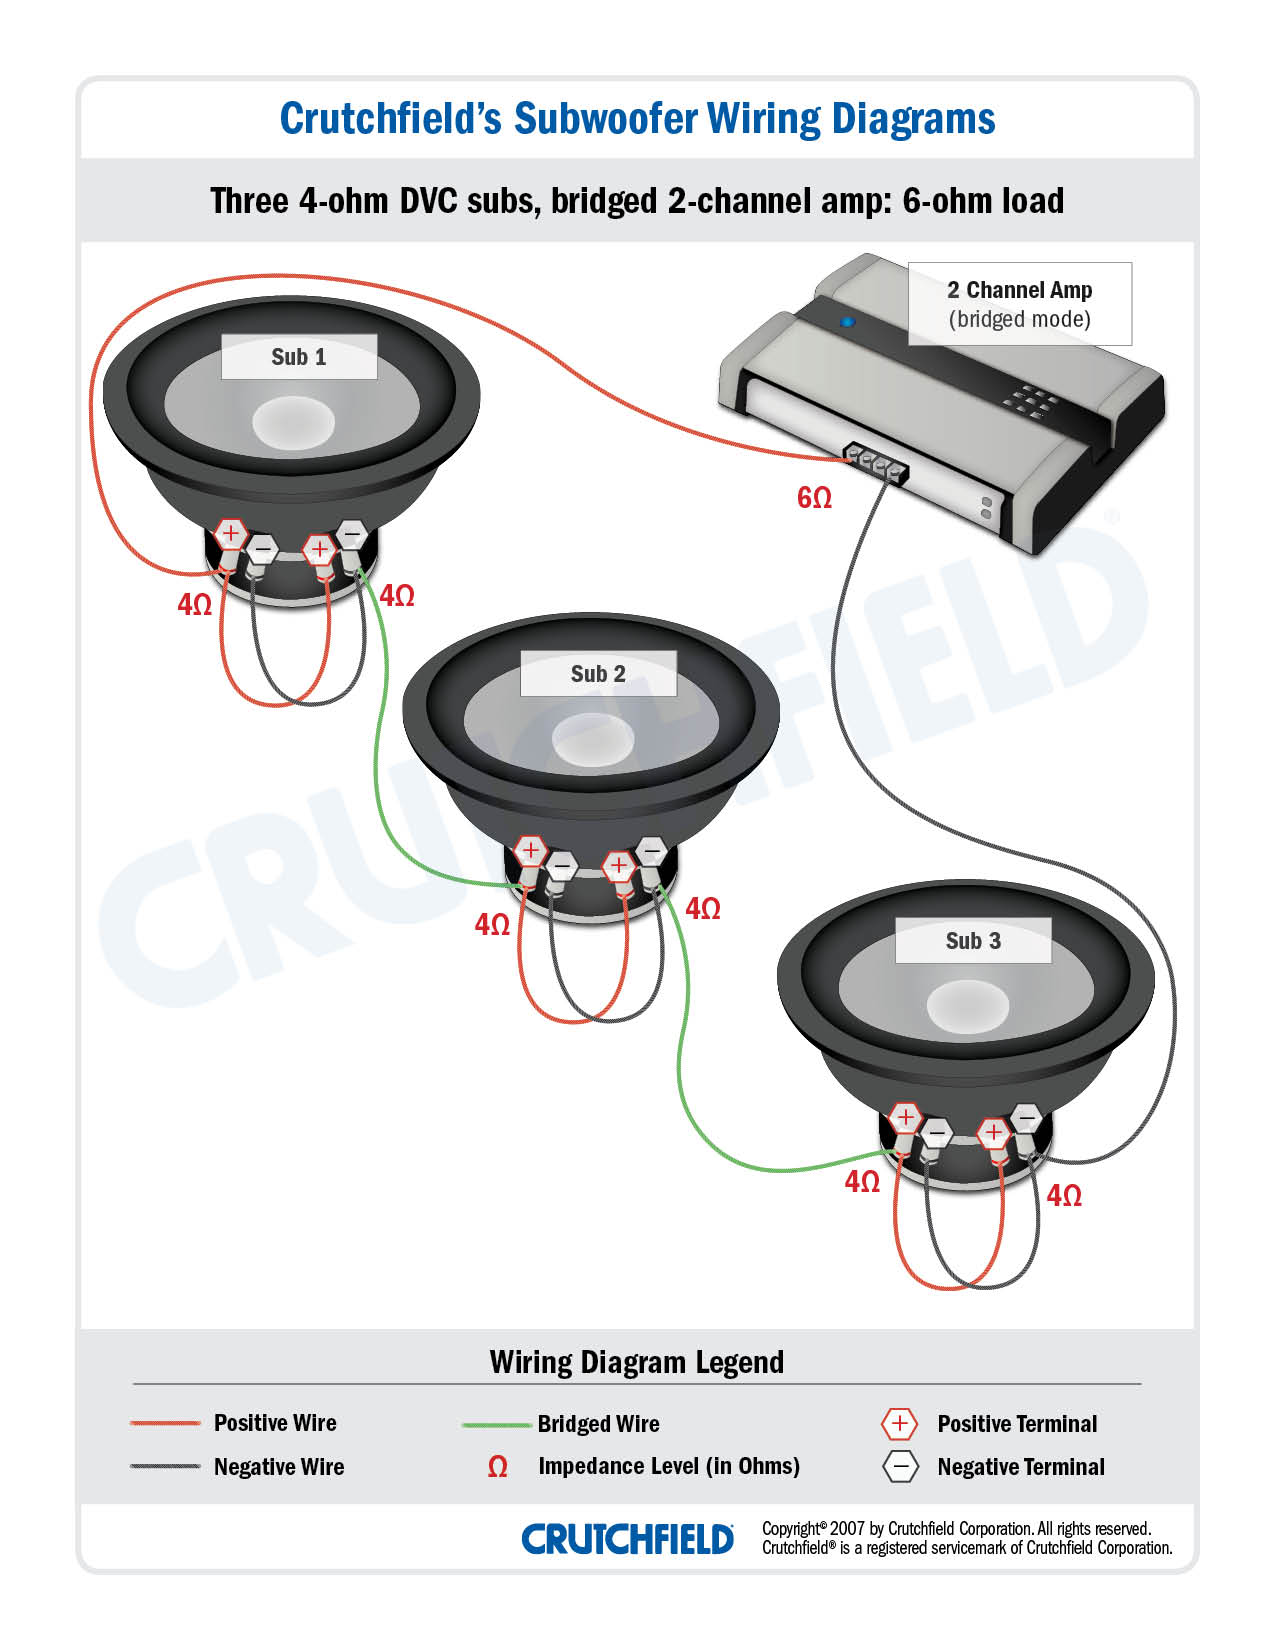 Tremendous Subwoofer Wiring Diagrams How To Wire Your Subs Wiring 101 Akebwellnesstrialsorg